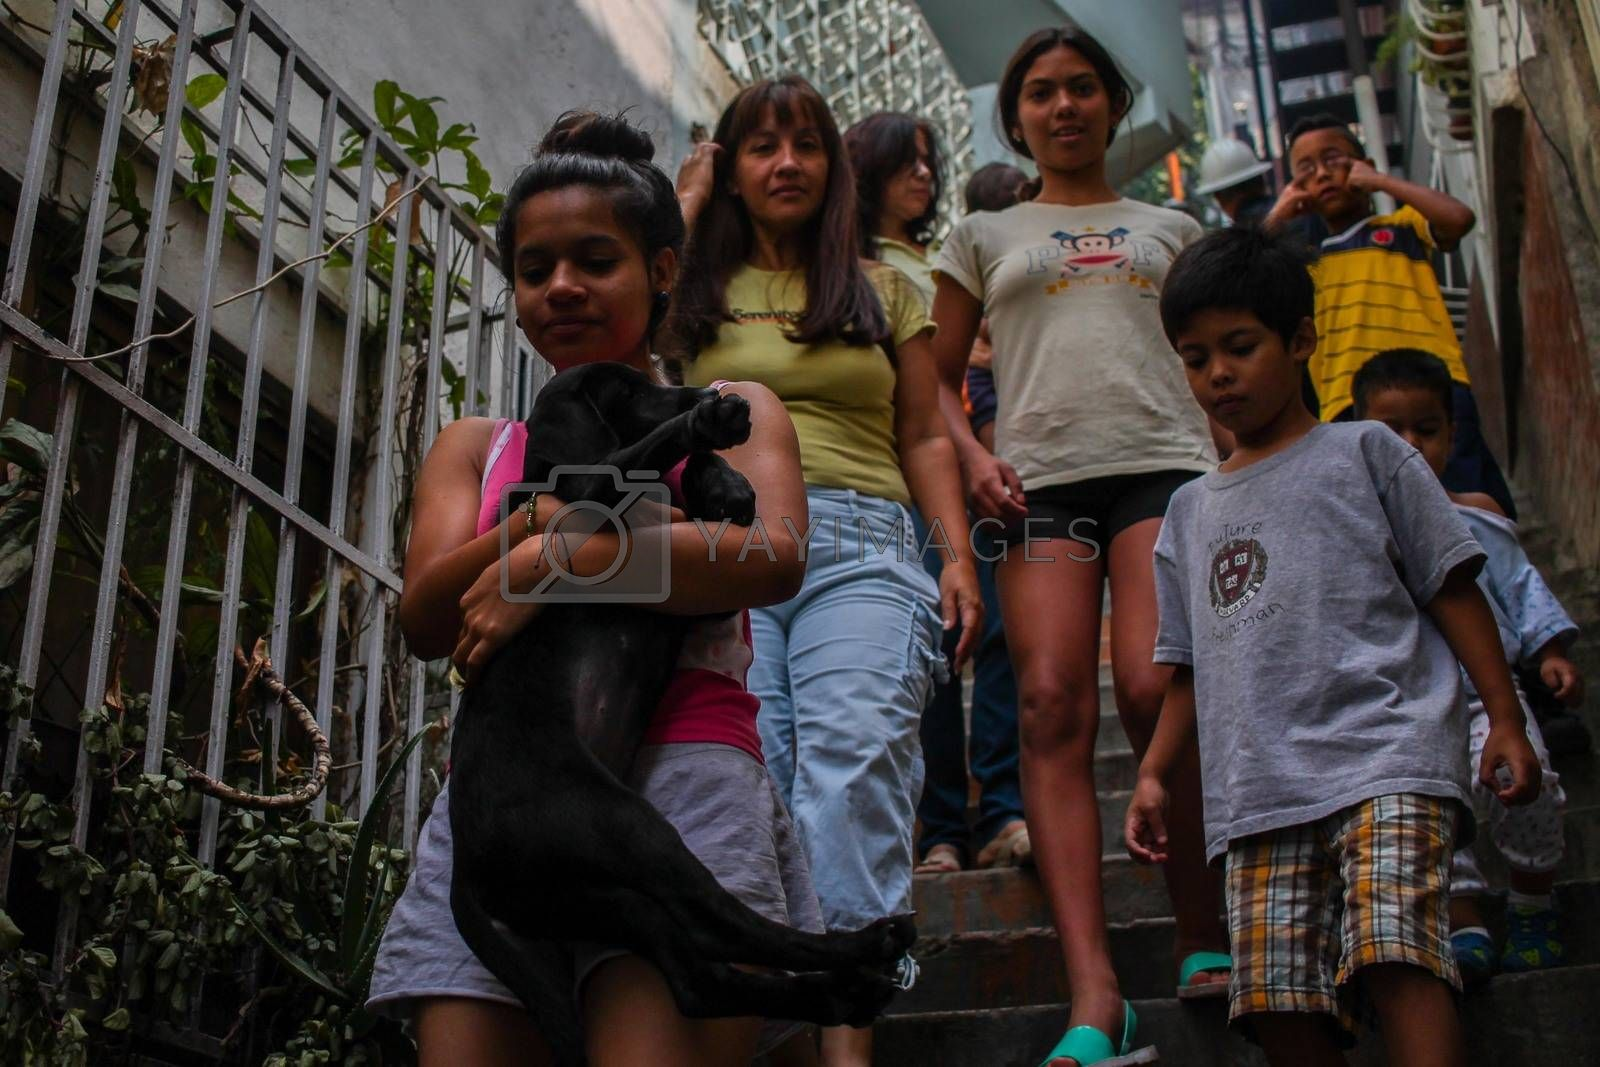 VENEZUELA, Caracas: Children exit their homes to allow for the extermination of Aedes mosquitoes carrying the Zika virus in the slums of Caracas, Venezuela on February 3, 2016. As of February 4, there have been reports of at least 255 cases of the rare Guillain-Barre syndrome — which causes the immune system to attack the nerves — potentially linked to the Zika virus in Venezuela.